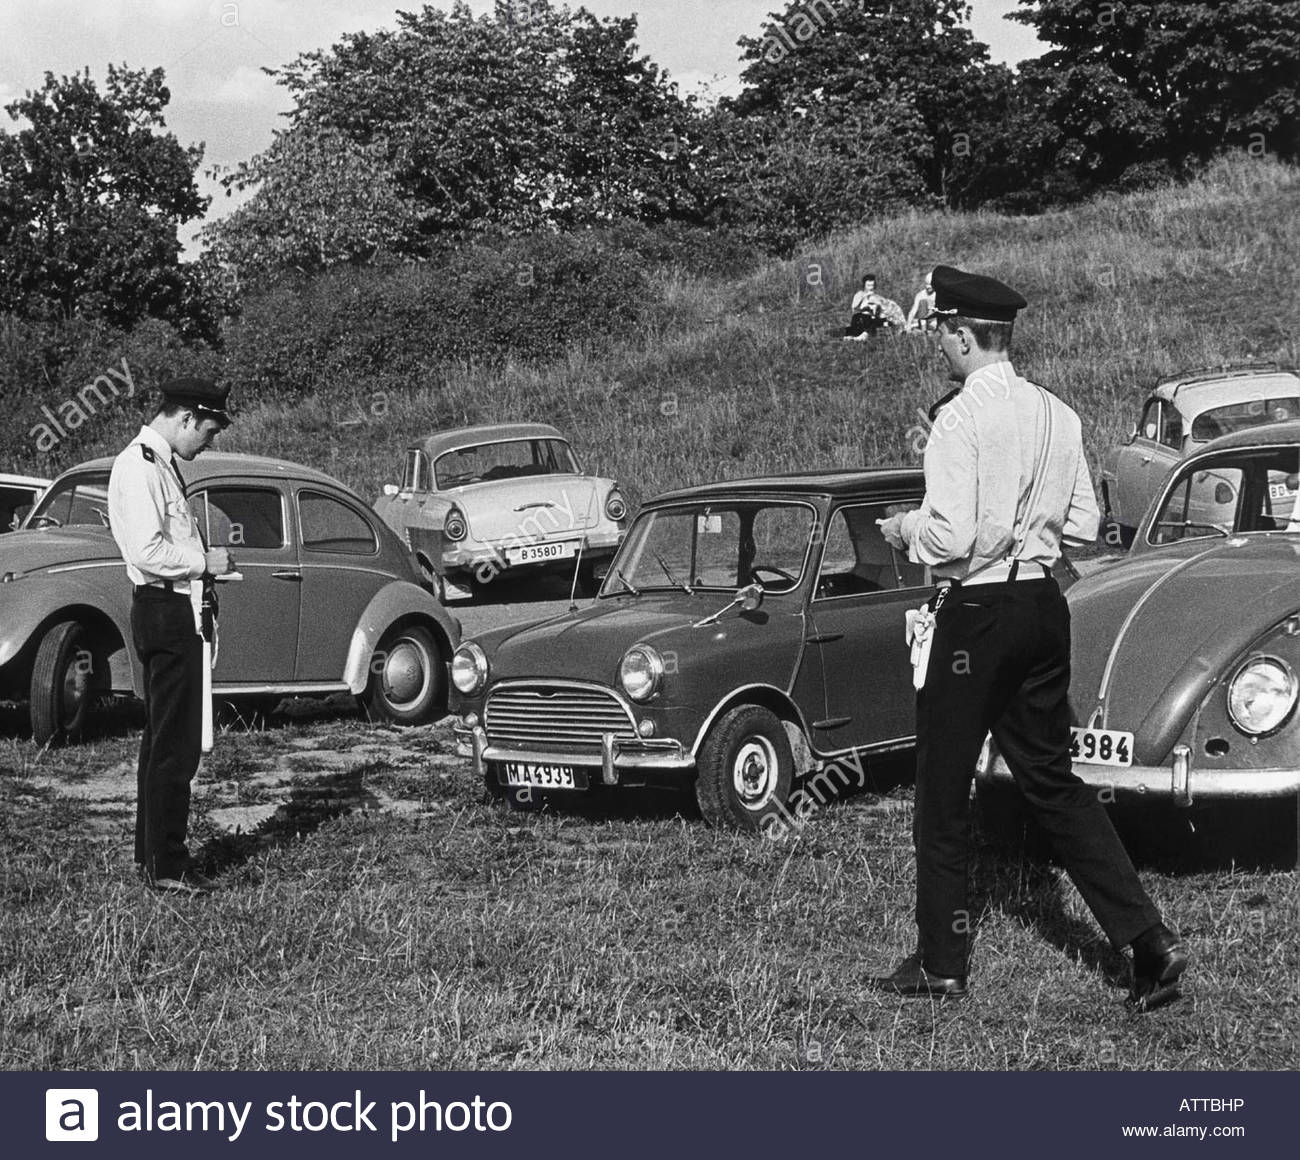 Traffic police by the cars parked in the parking - Stock Image